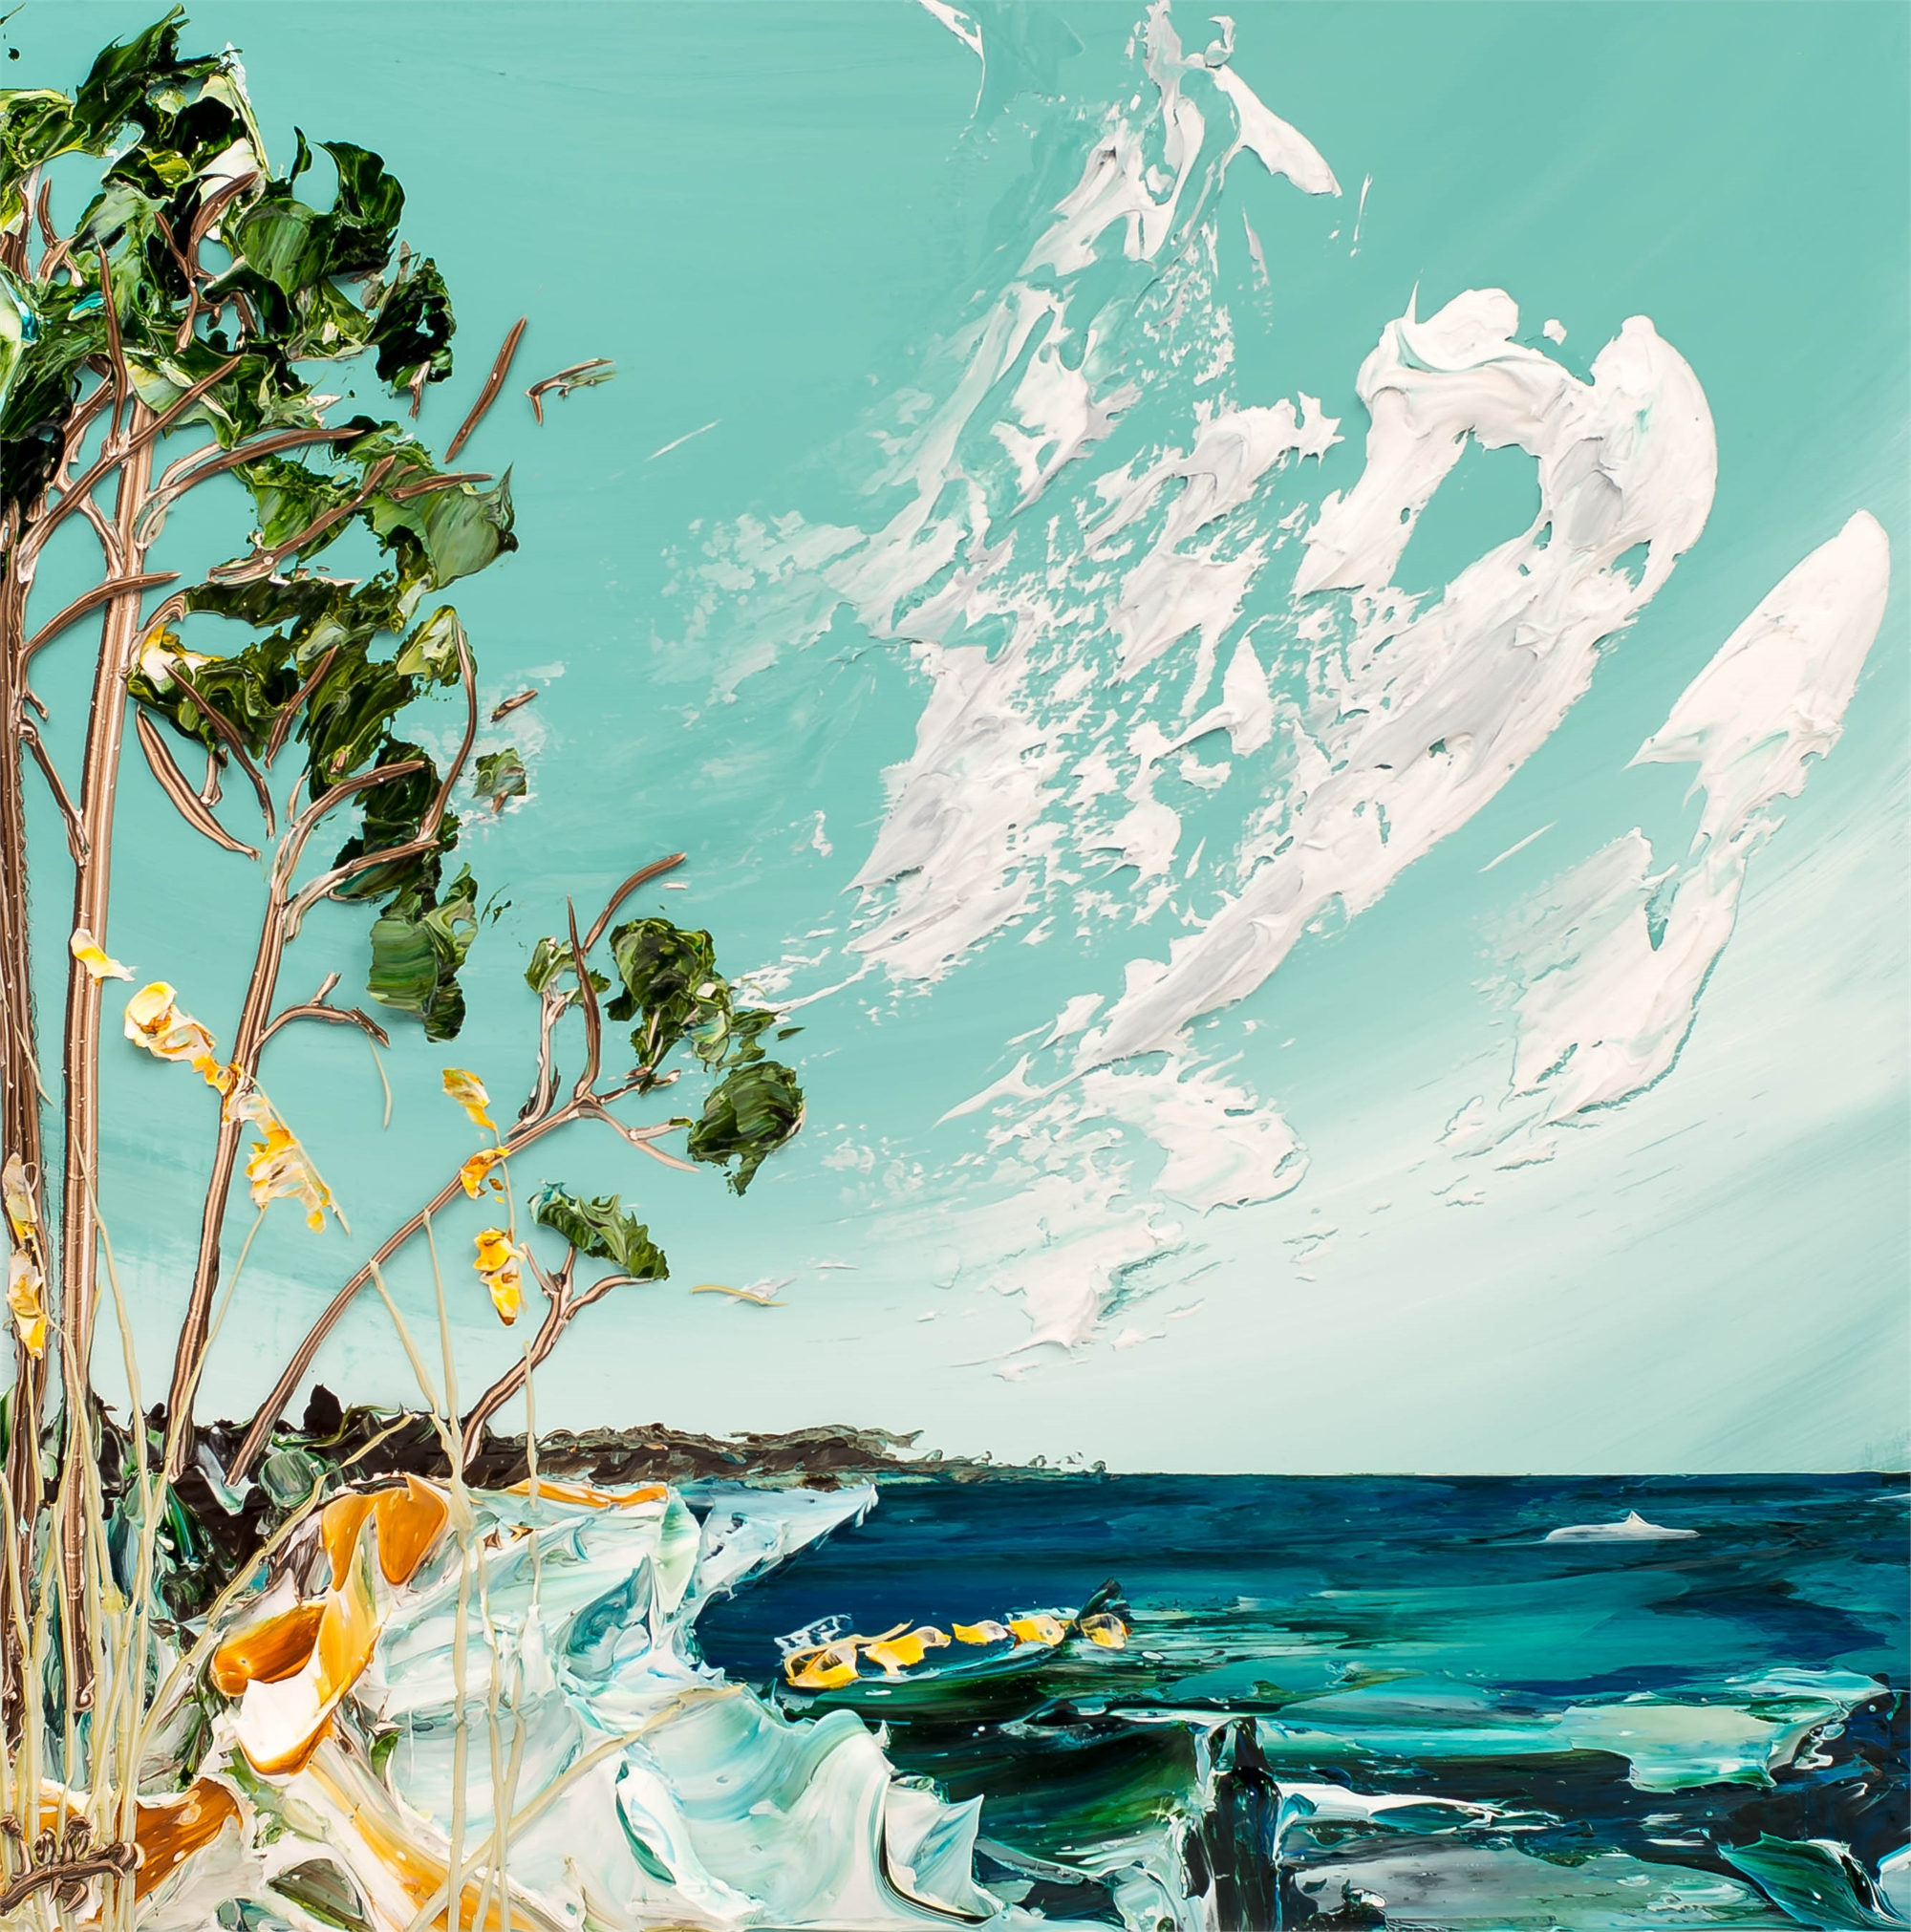 Seascape by JUSTIN GAFFREY